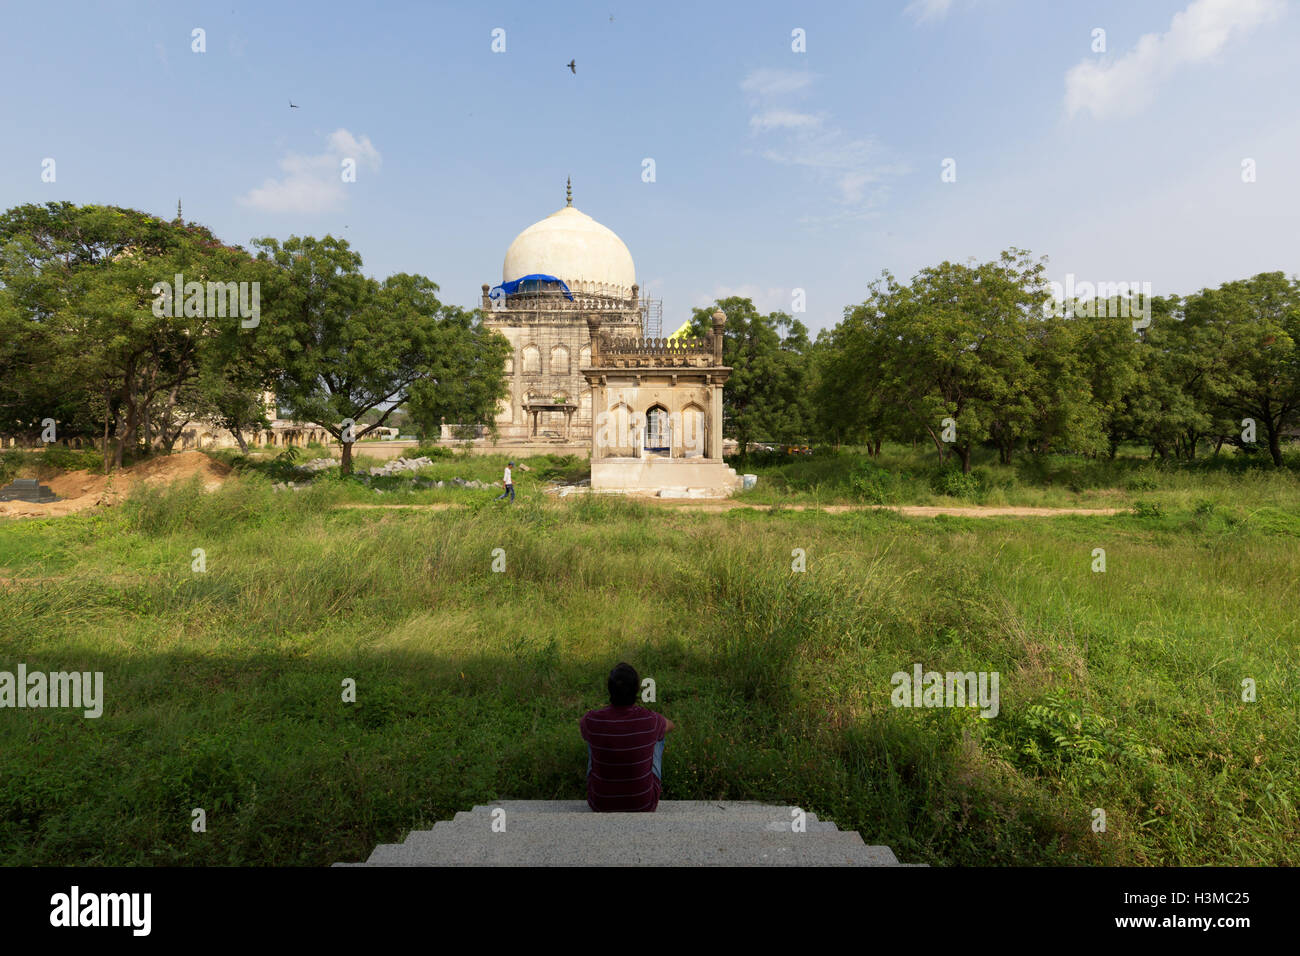 Qutb Shahi Tombs in Hyderabad,India - Stock Image